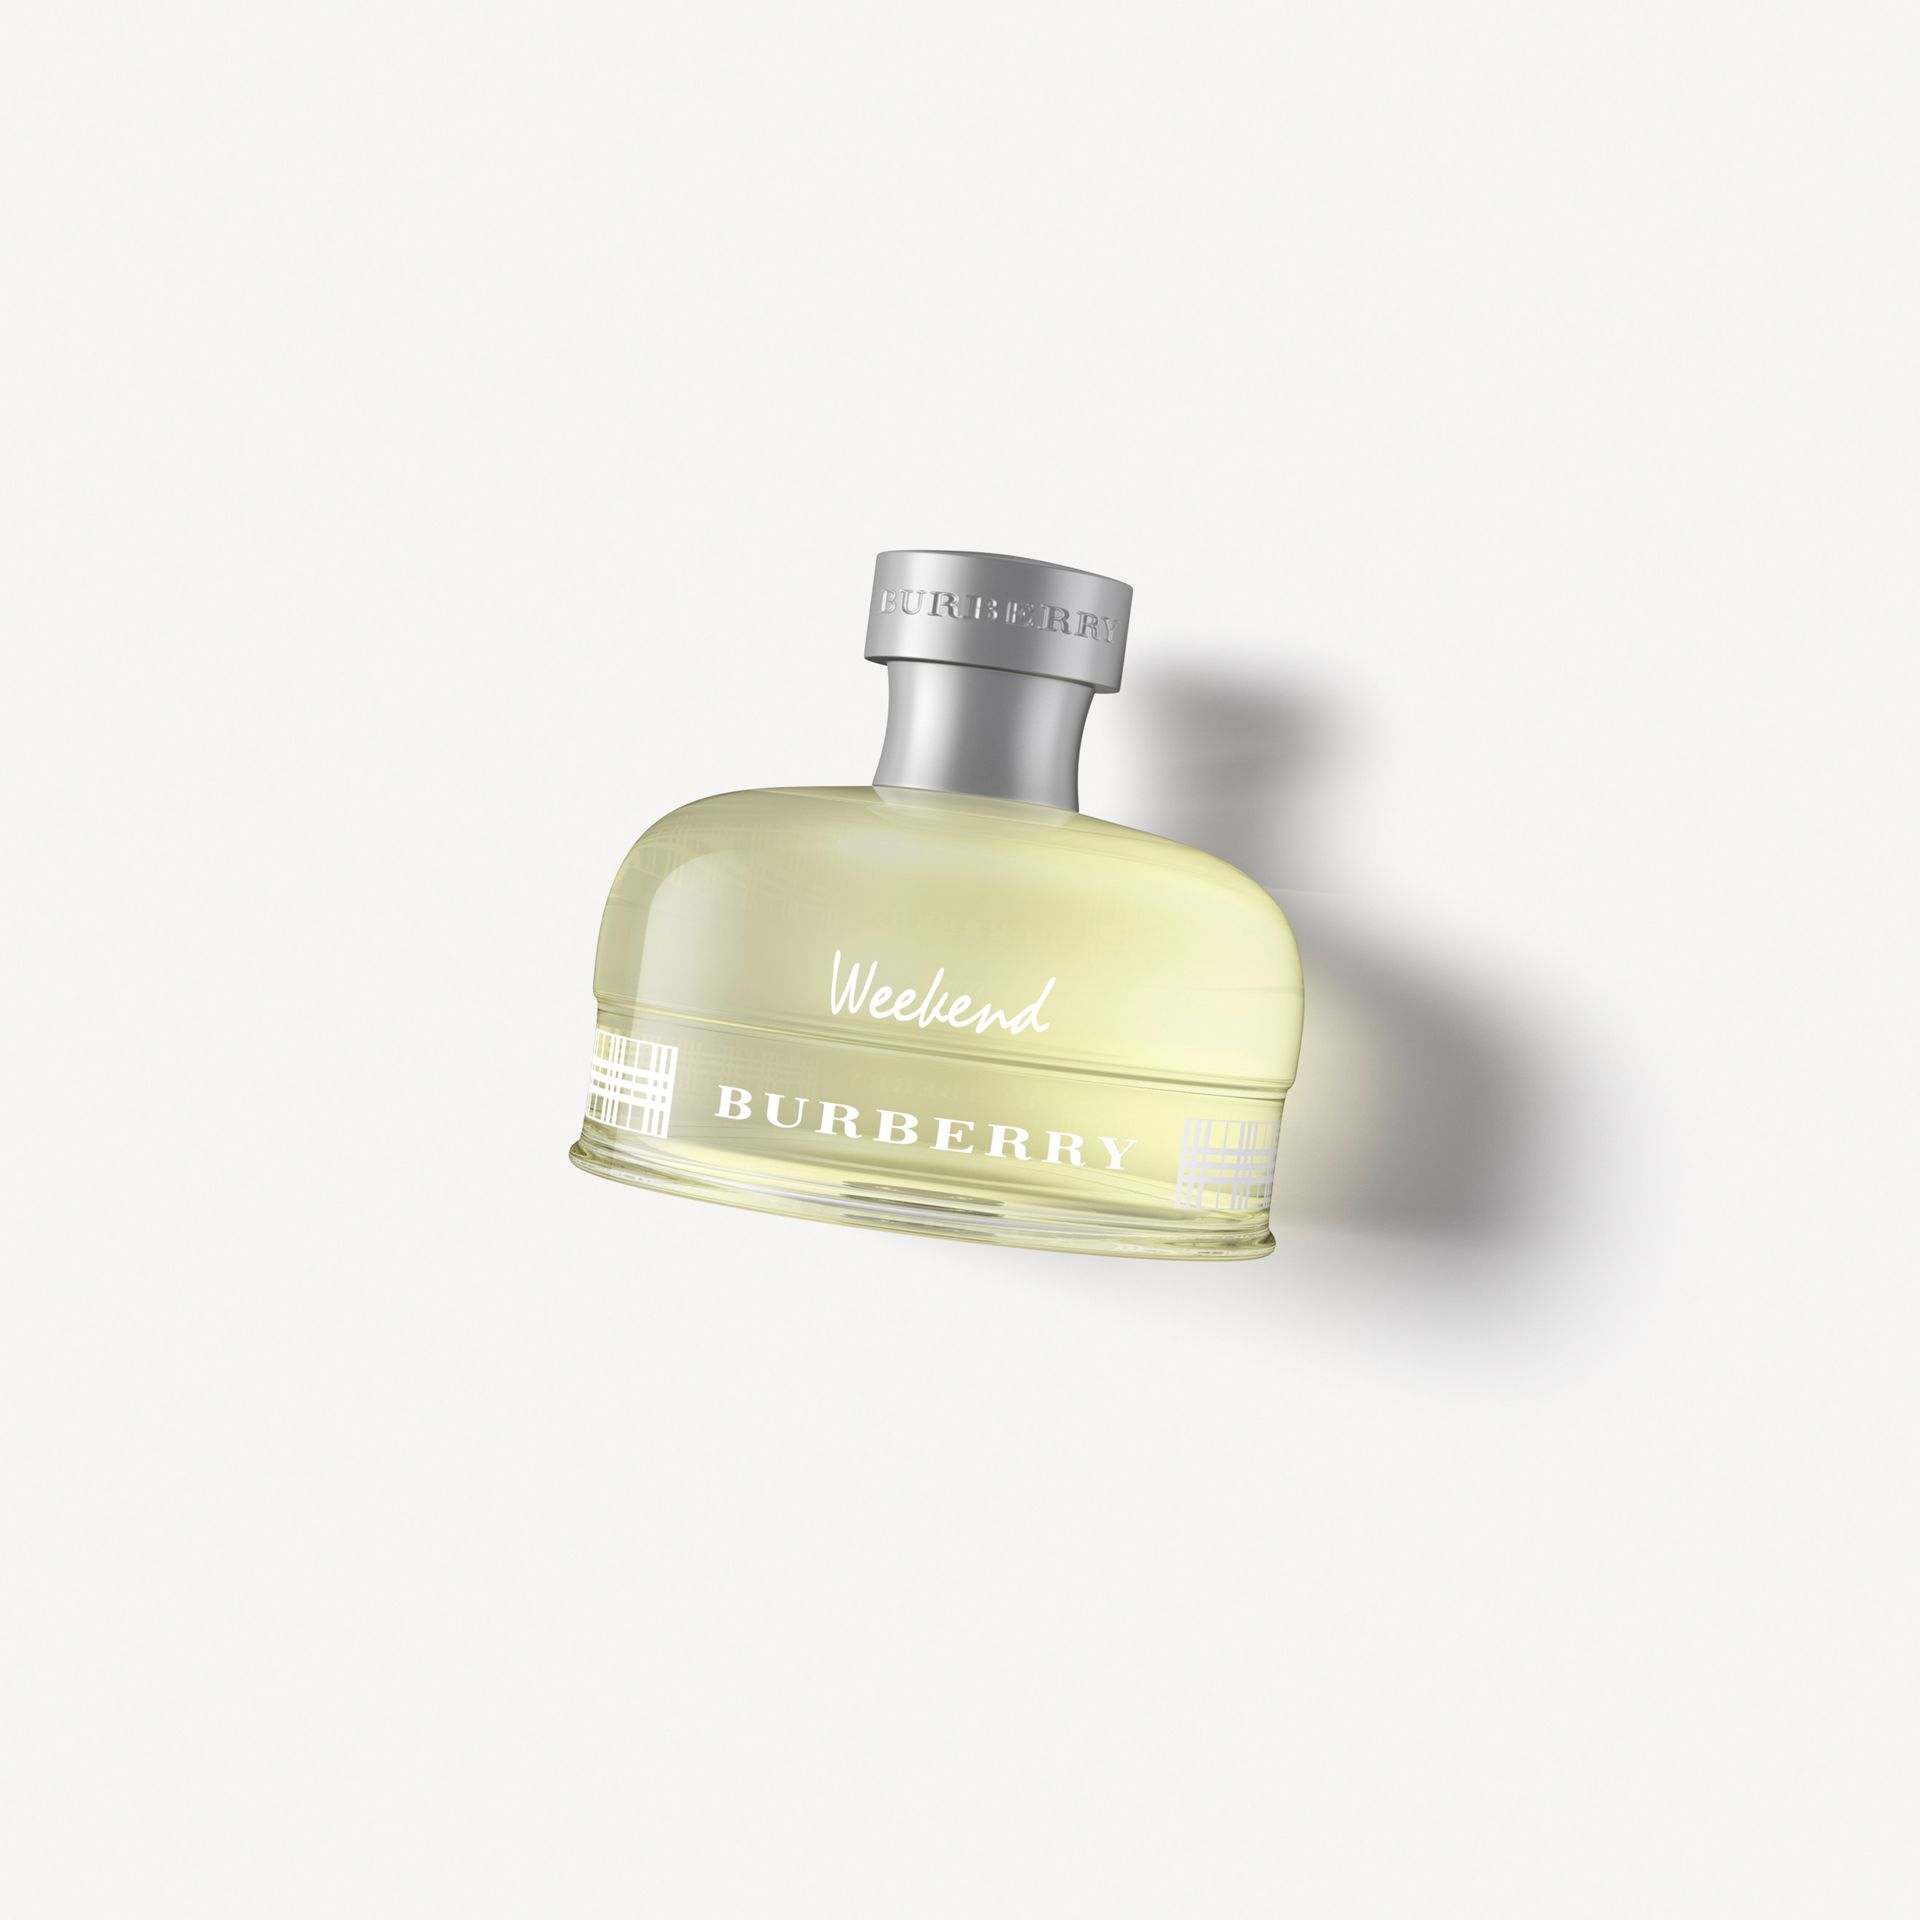 Burberry Weekend Eau de Parfum 100ml - Women | Burberry Canada - gallery image 1